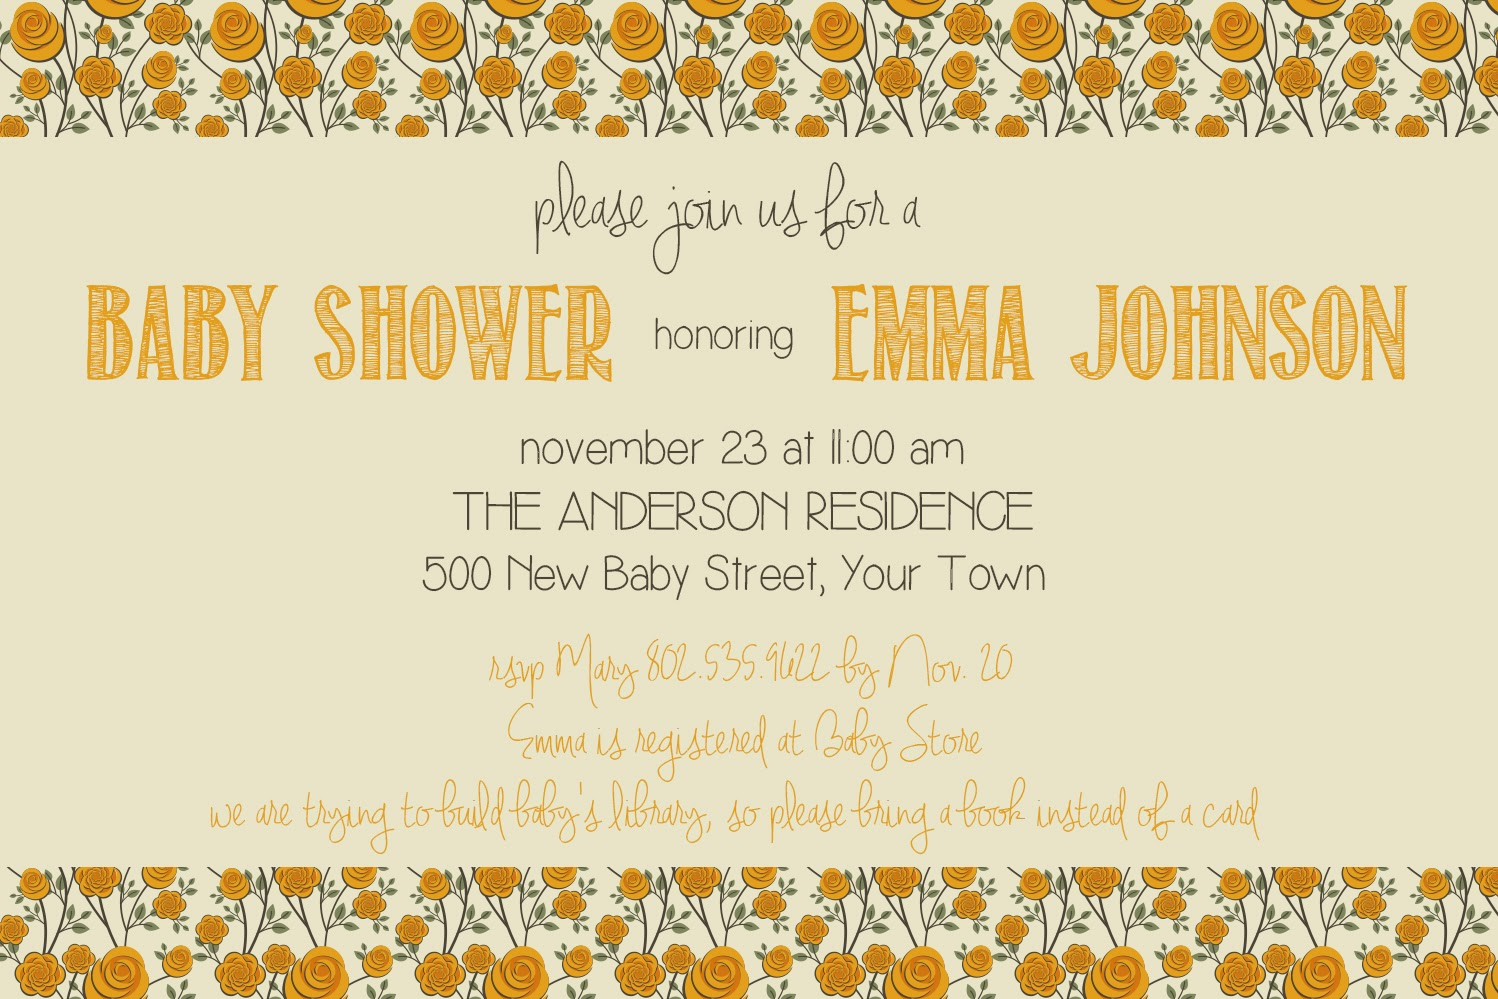 vintage baby shower invitation, floral baby shower invitation